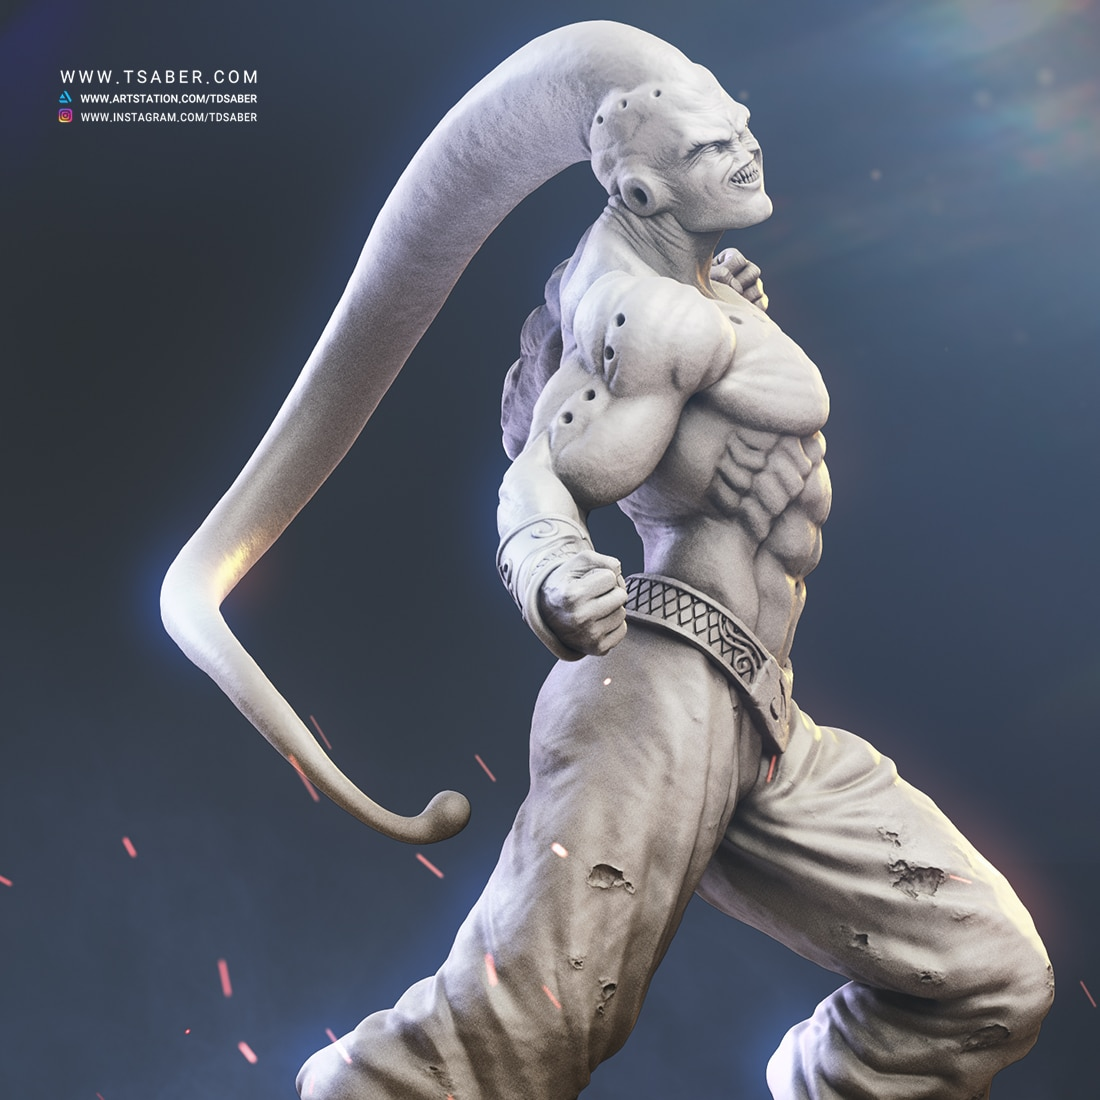 Majin Buu Zbrush statue Sculpture - Dragon Ball Z collectibles- Tsaber